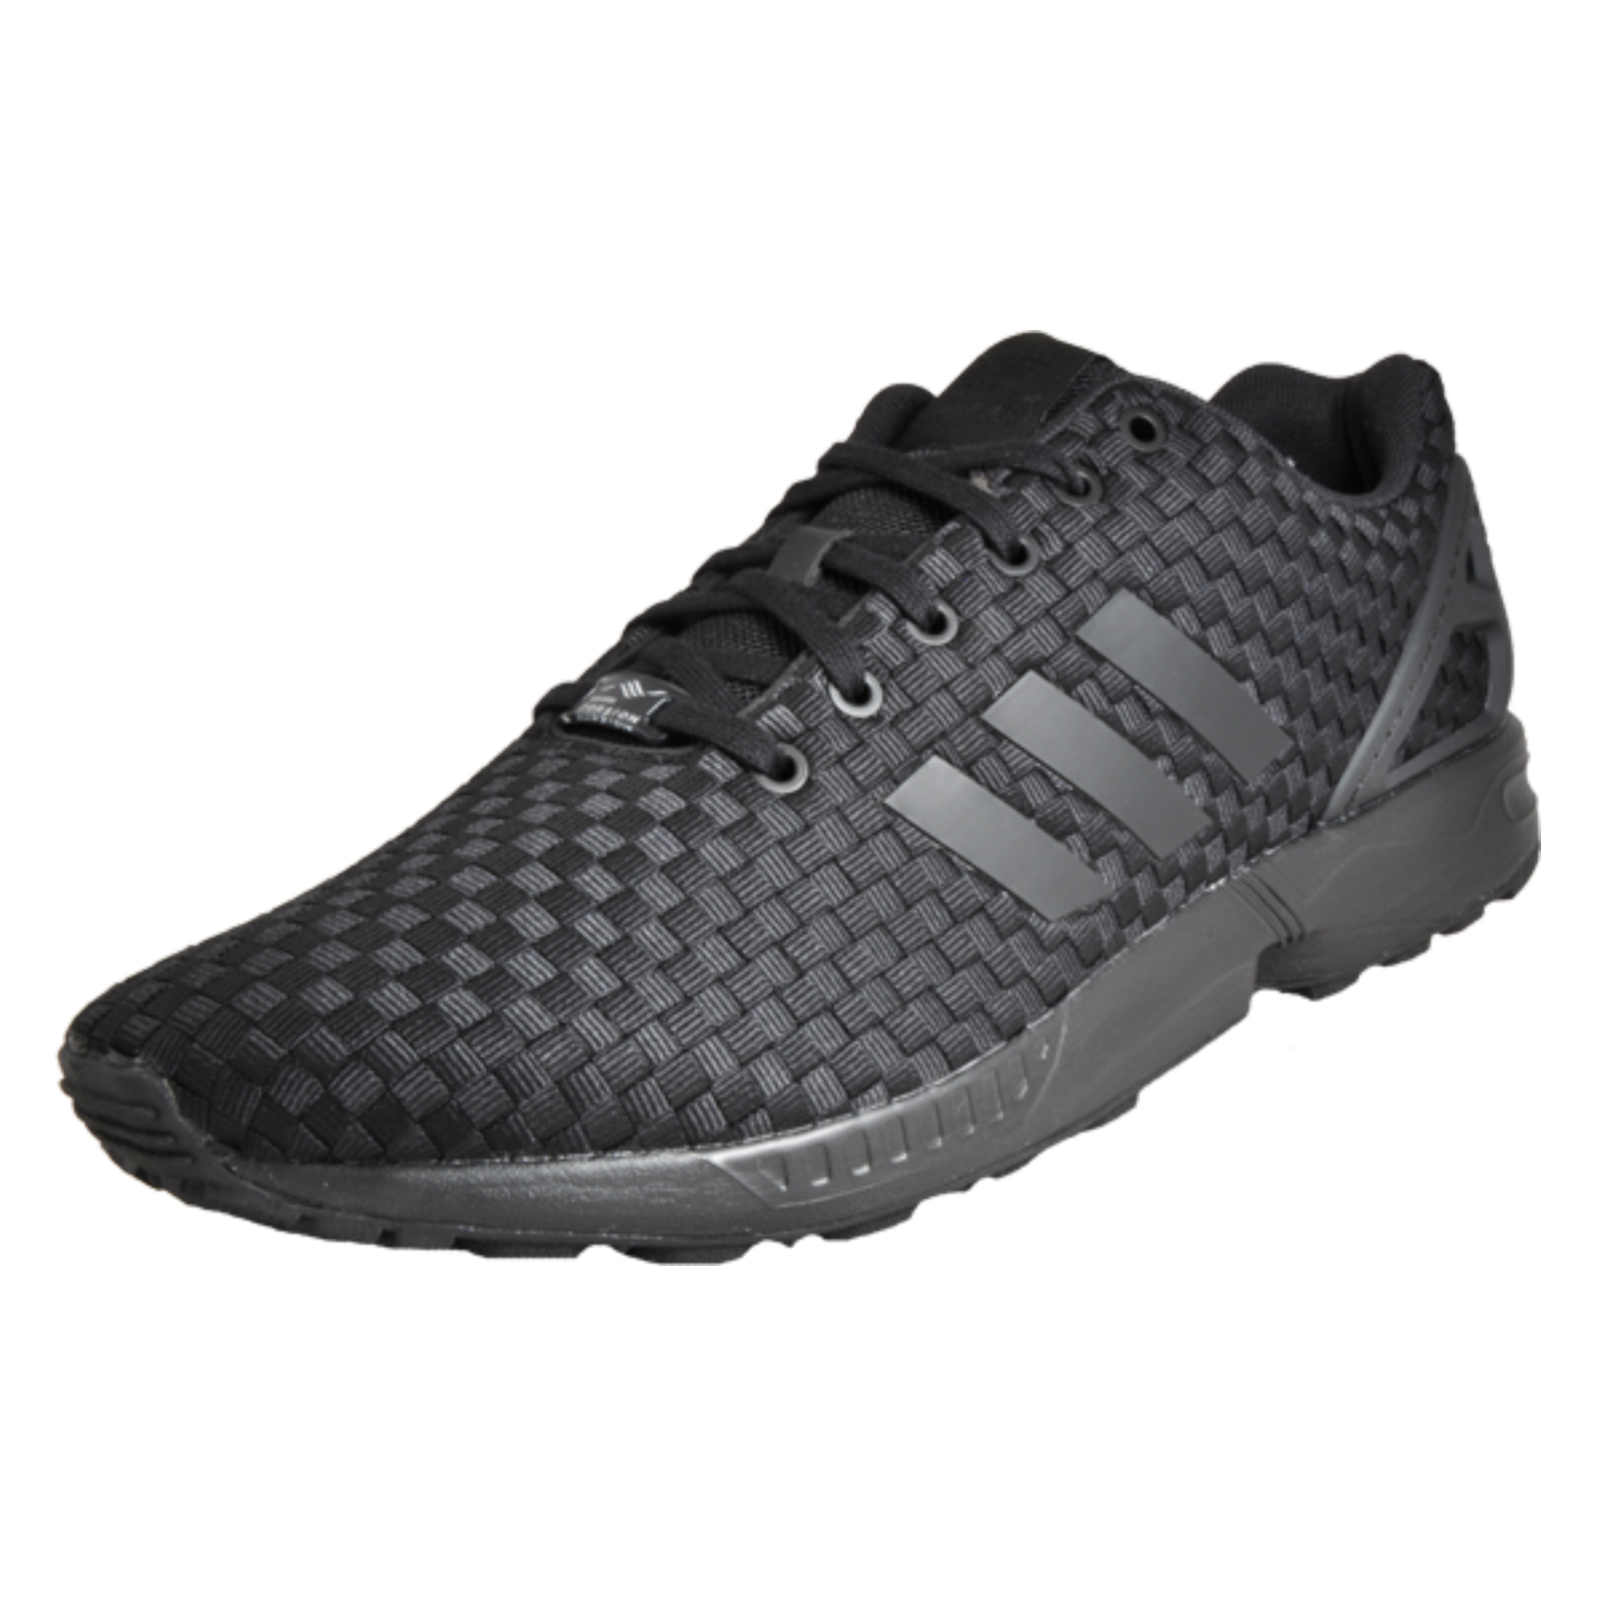 4ec1d473c995f Details about Adidas Originals ZX Flux Men s Casual Fitness Gym Trainers  Core Black UK 13 Only